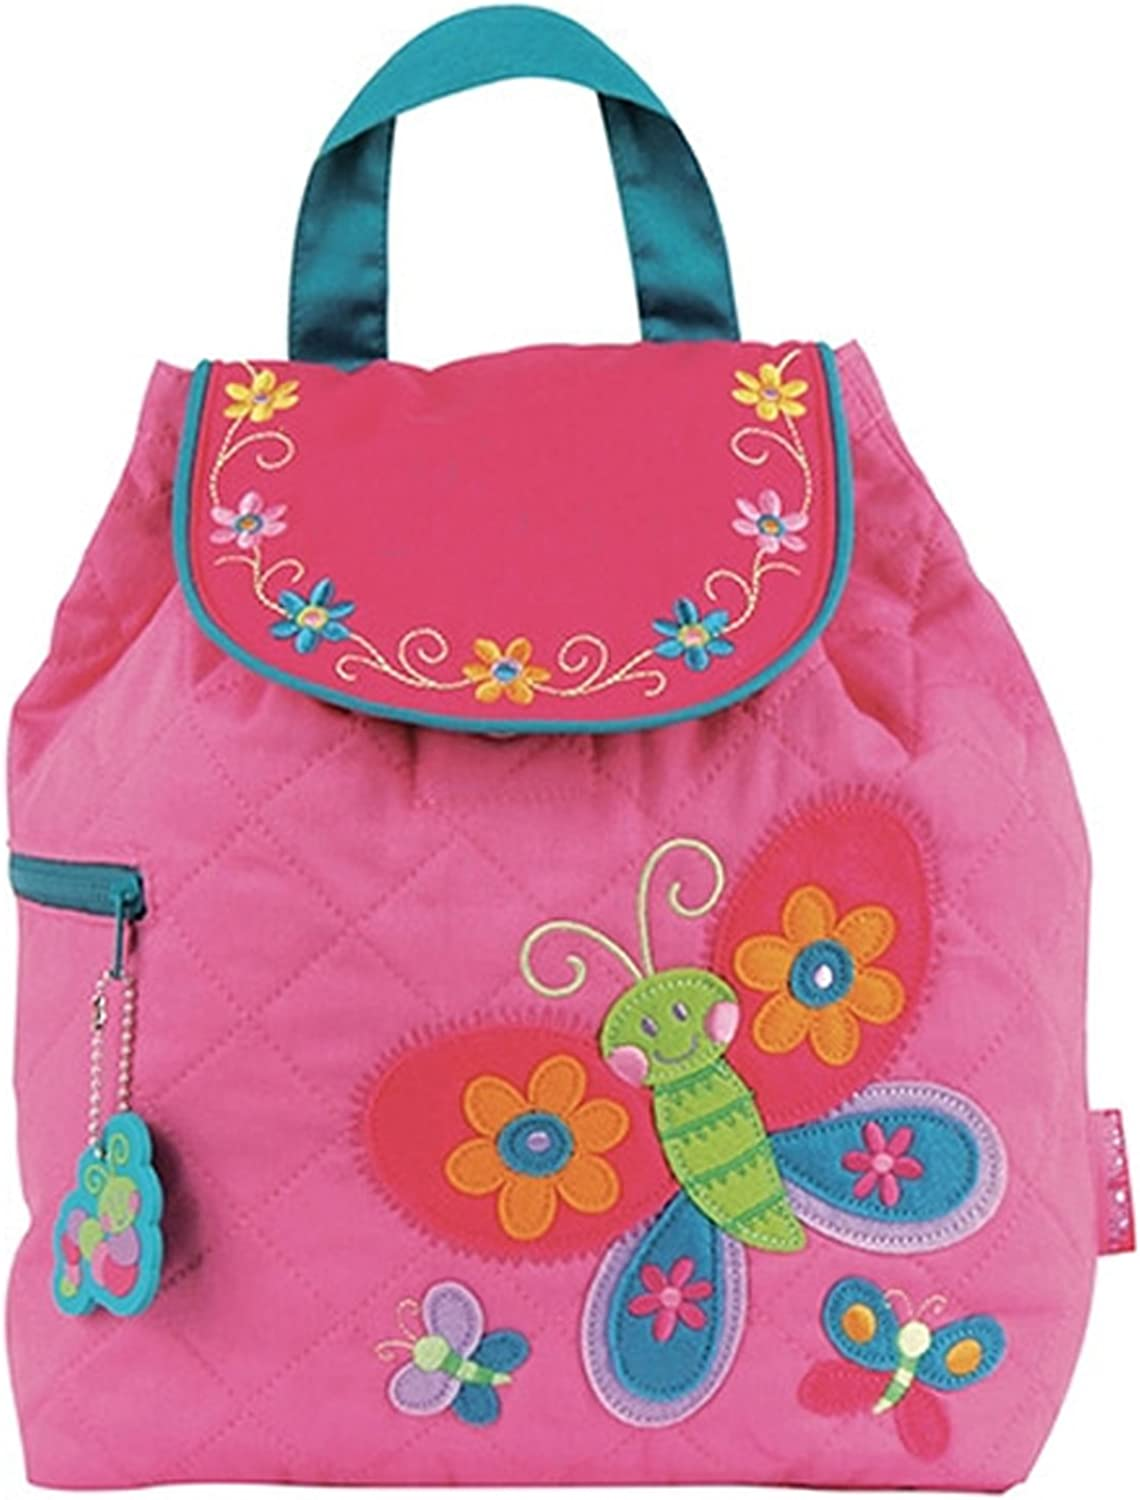 Butterfly Stephen Joseph Quilted Backpack